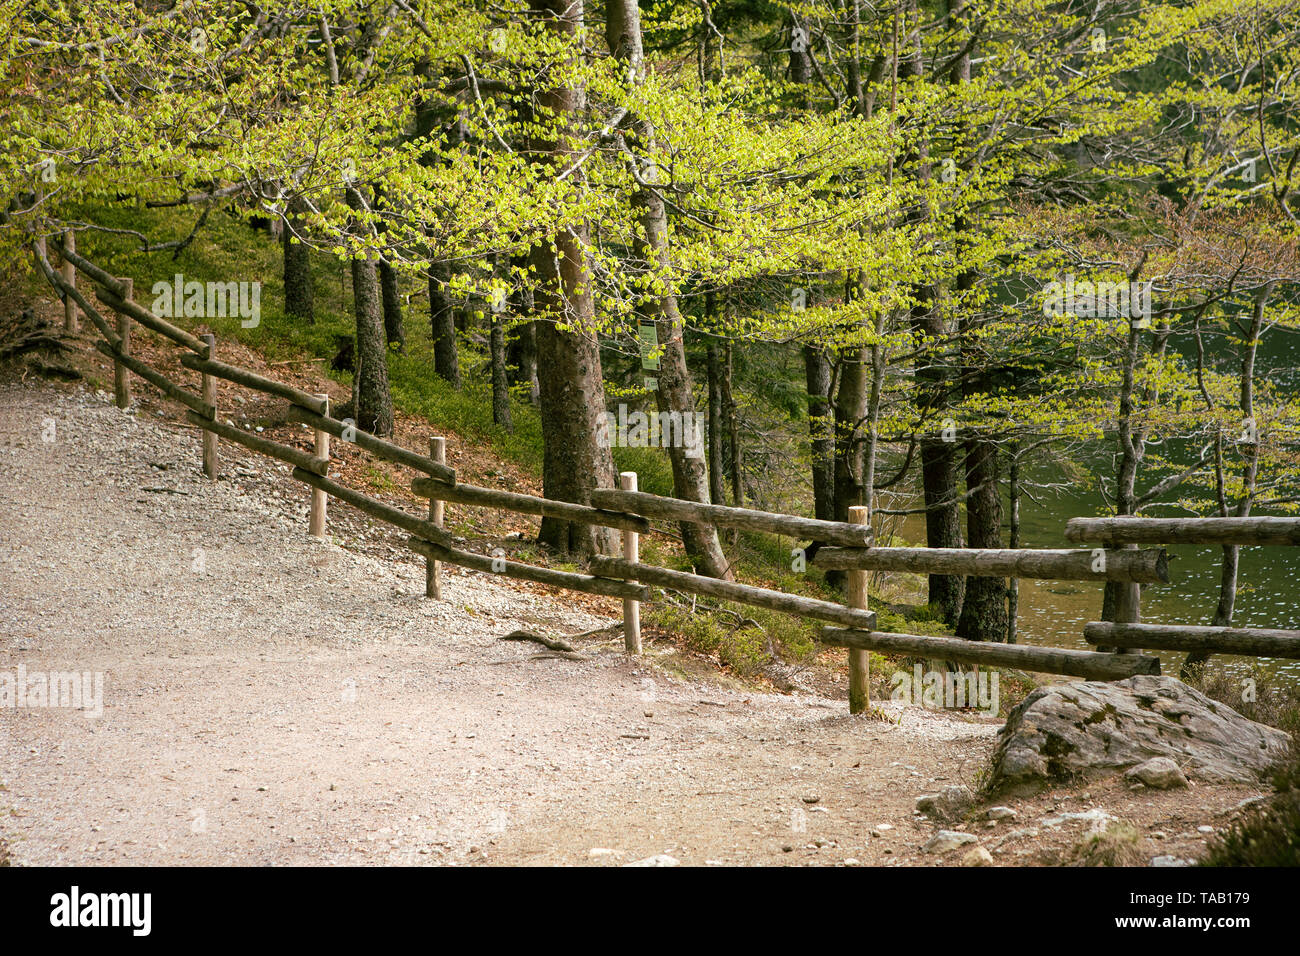 Path in wood in spring. Wooden fence in wild forest landscape. Mountain Hike trail. Deciduous trees. Nature park. Schwarzwald, Germany. Black forest. - Stock Image